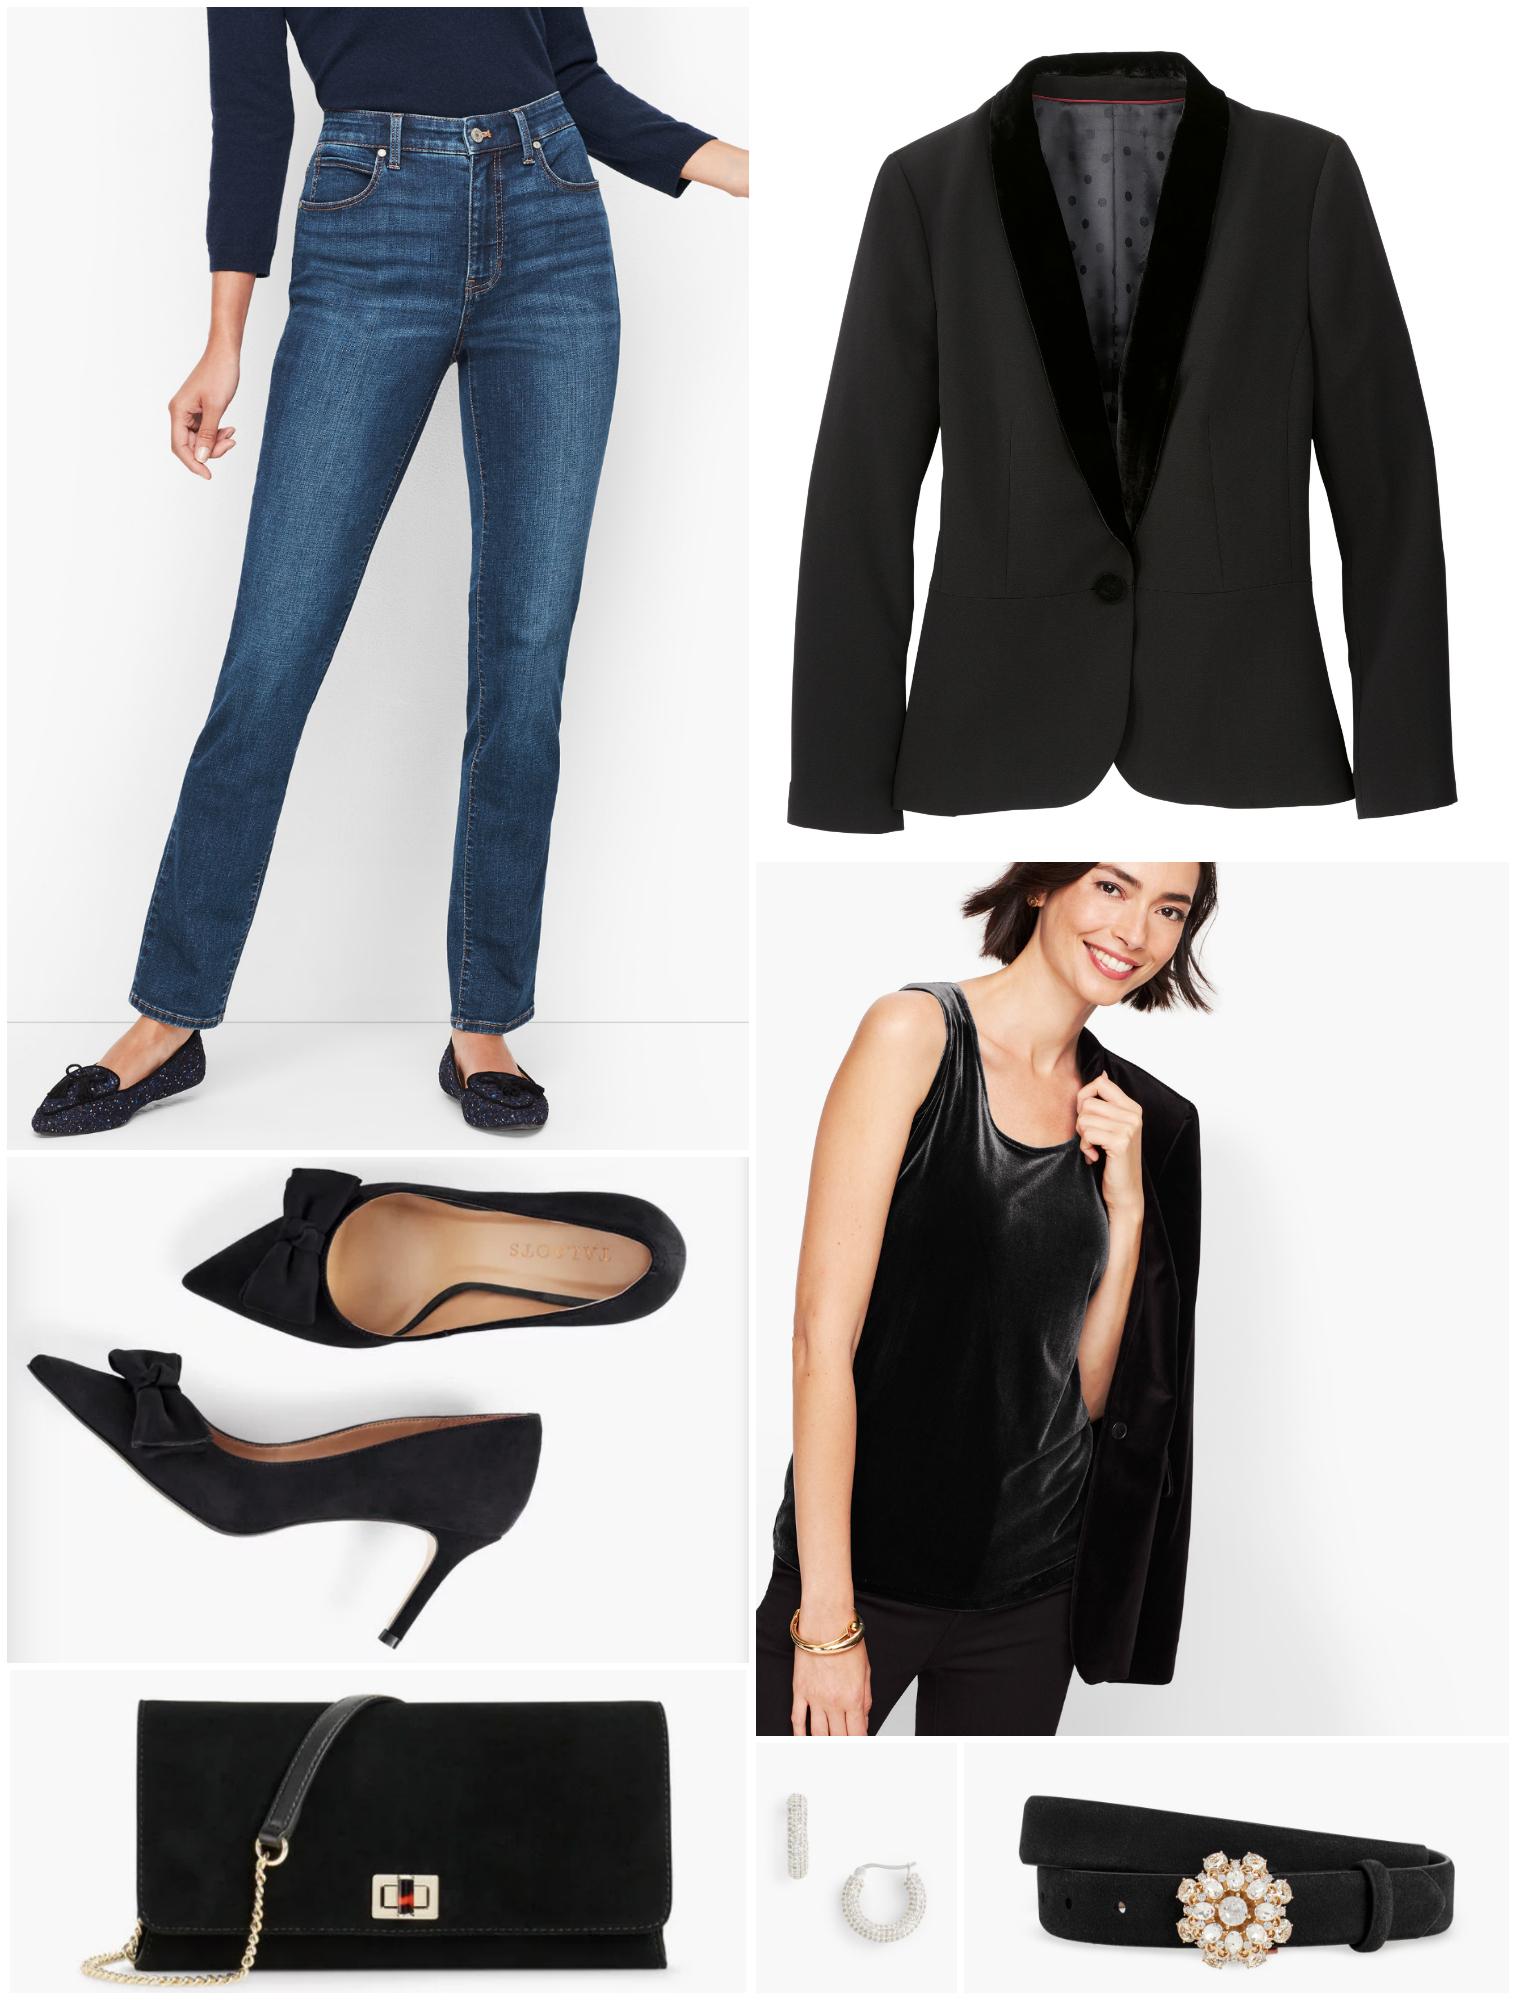 There's nothing chicer than pairing high with low.  Dress down a tuxedo jacket and heels with a pair of classic denim for Date Night, Girl's Night, or a holiday happy hour.